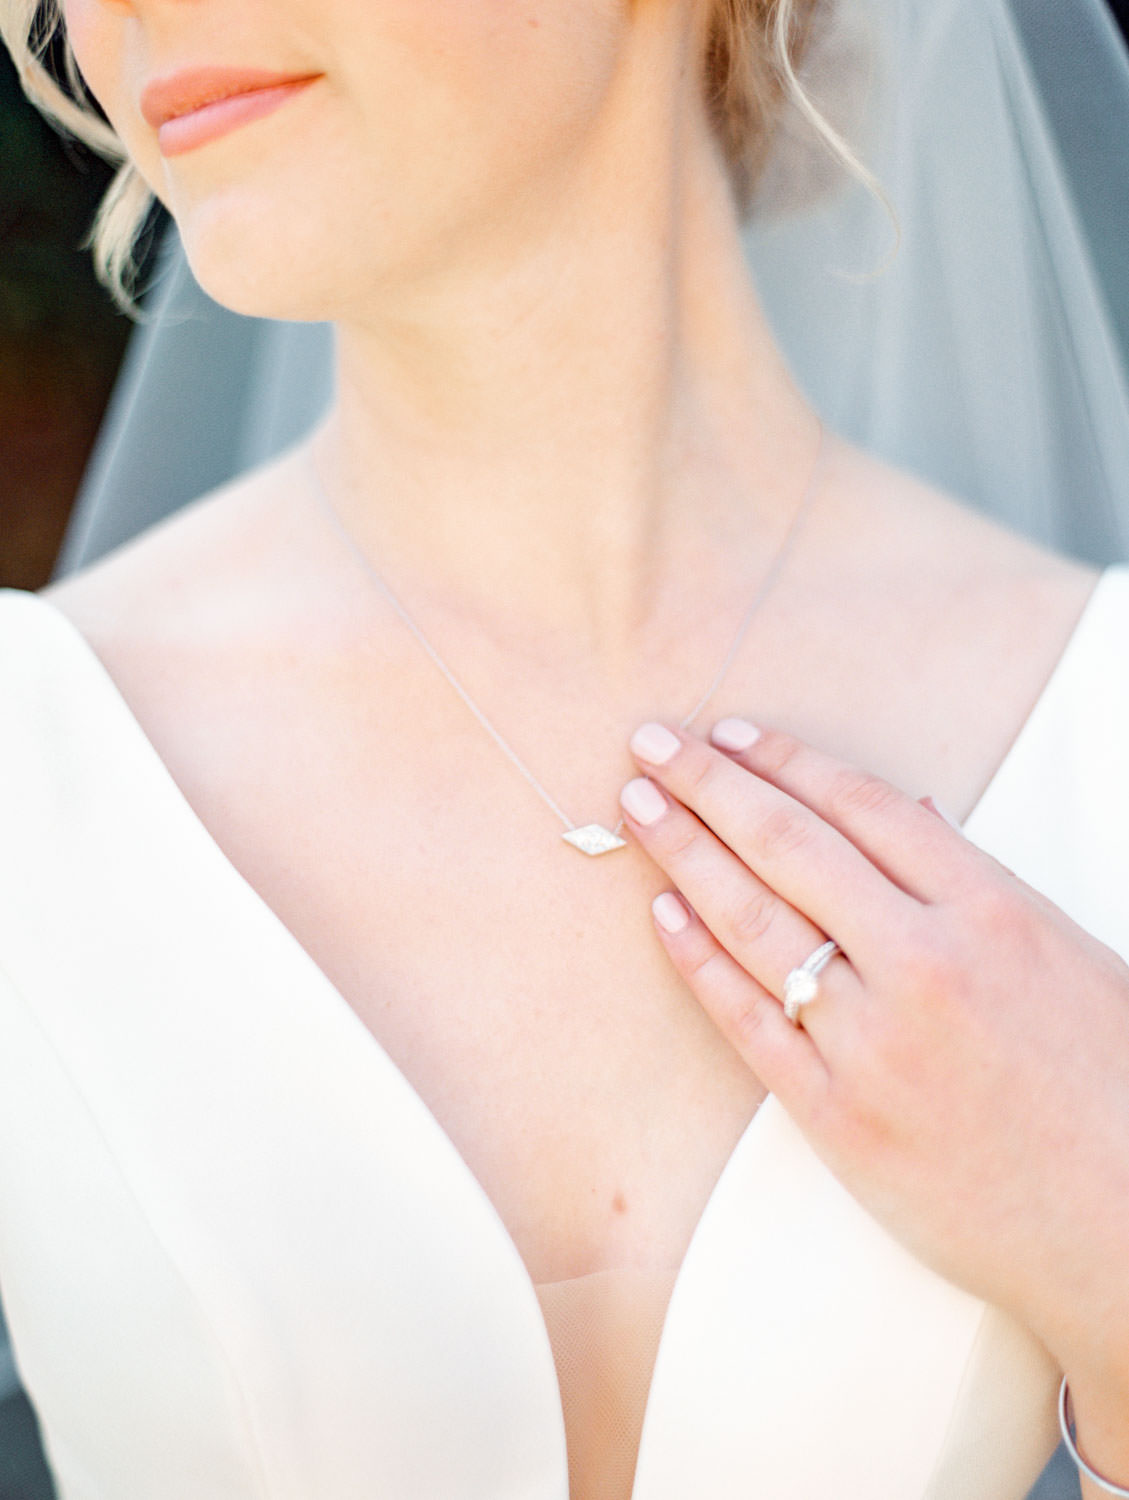 Bride in Stella York gown with blush nails and sideways diamond necklace. La Jolla wedding shot on film by Cavin Elizabeth Photography